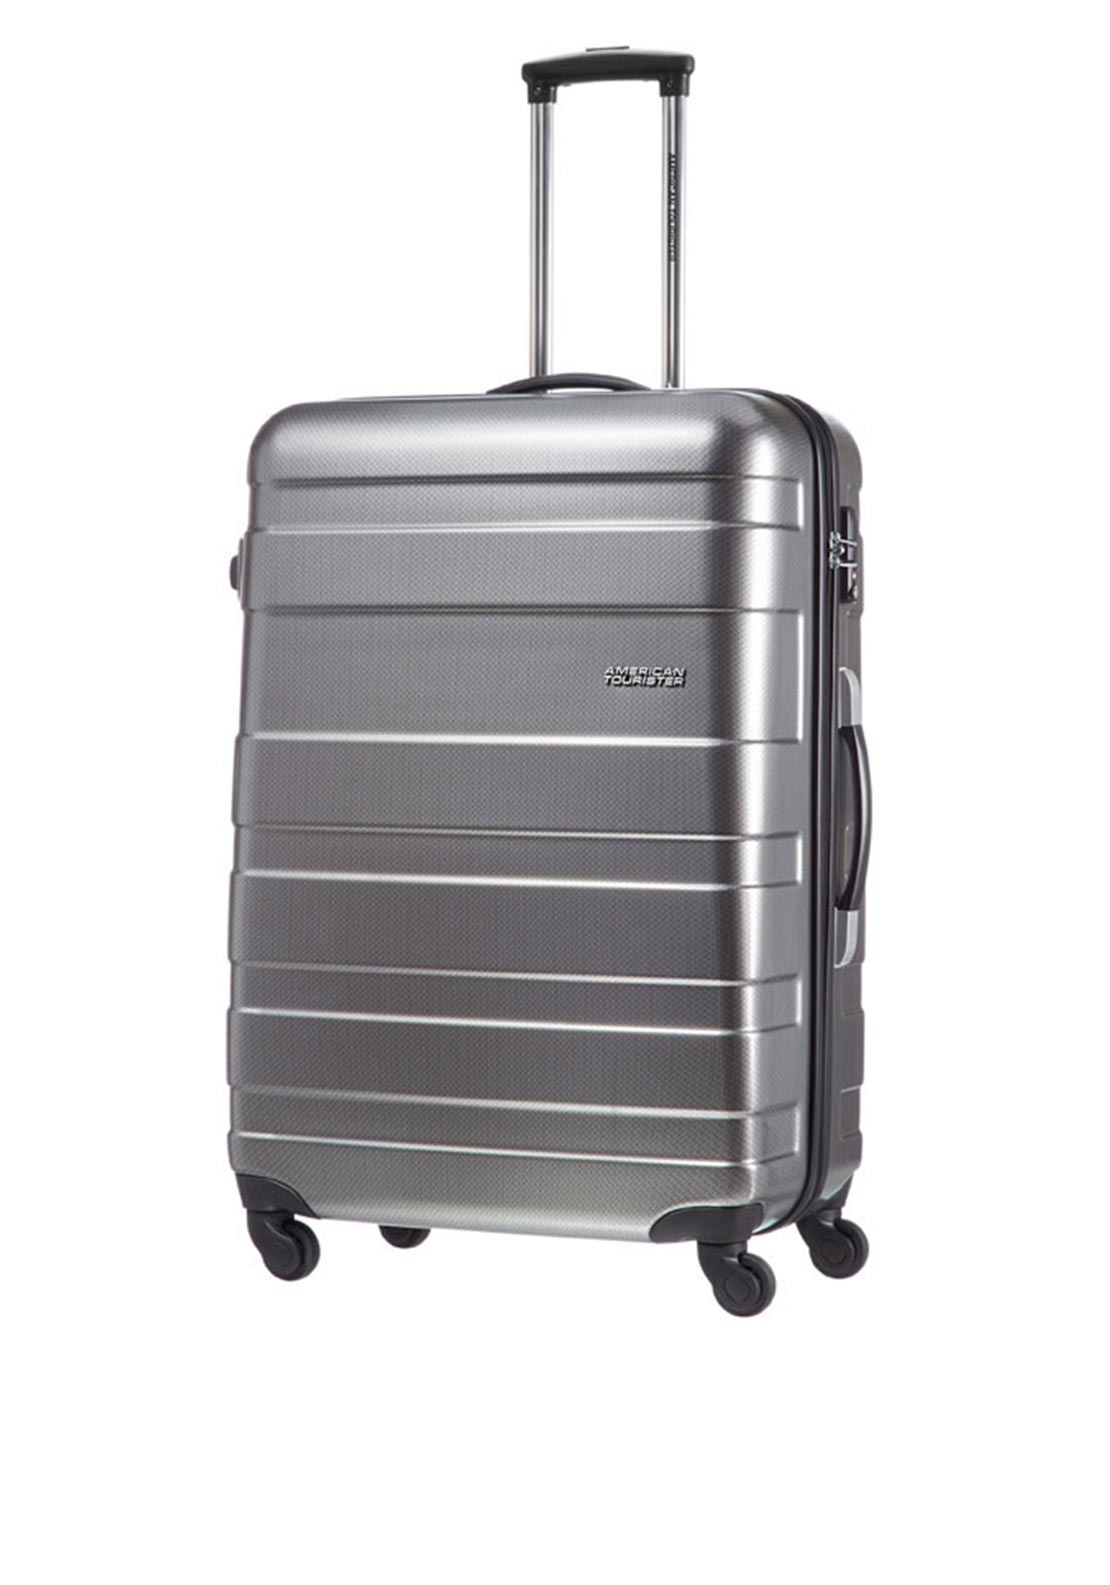 American Tourister Pasadena Spinner Large 77cm Suitcase, Check Black and Silver